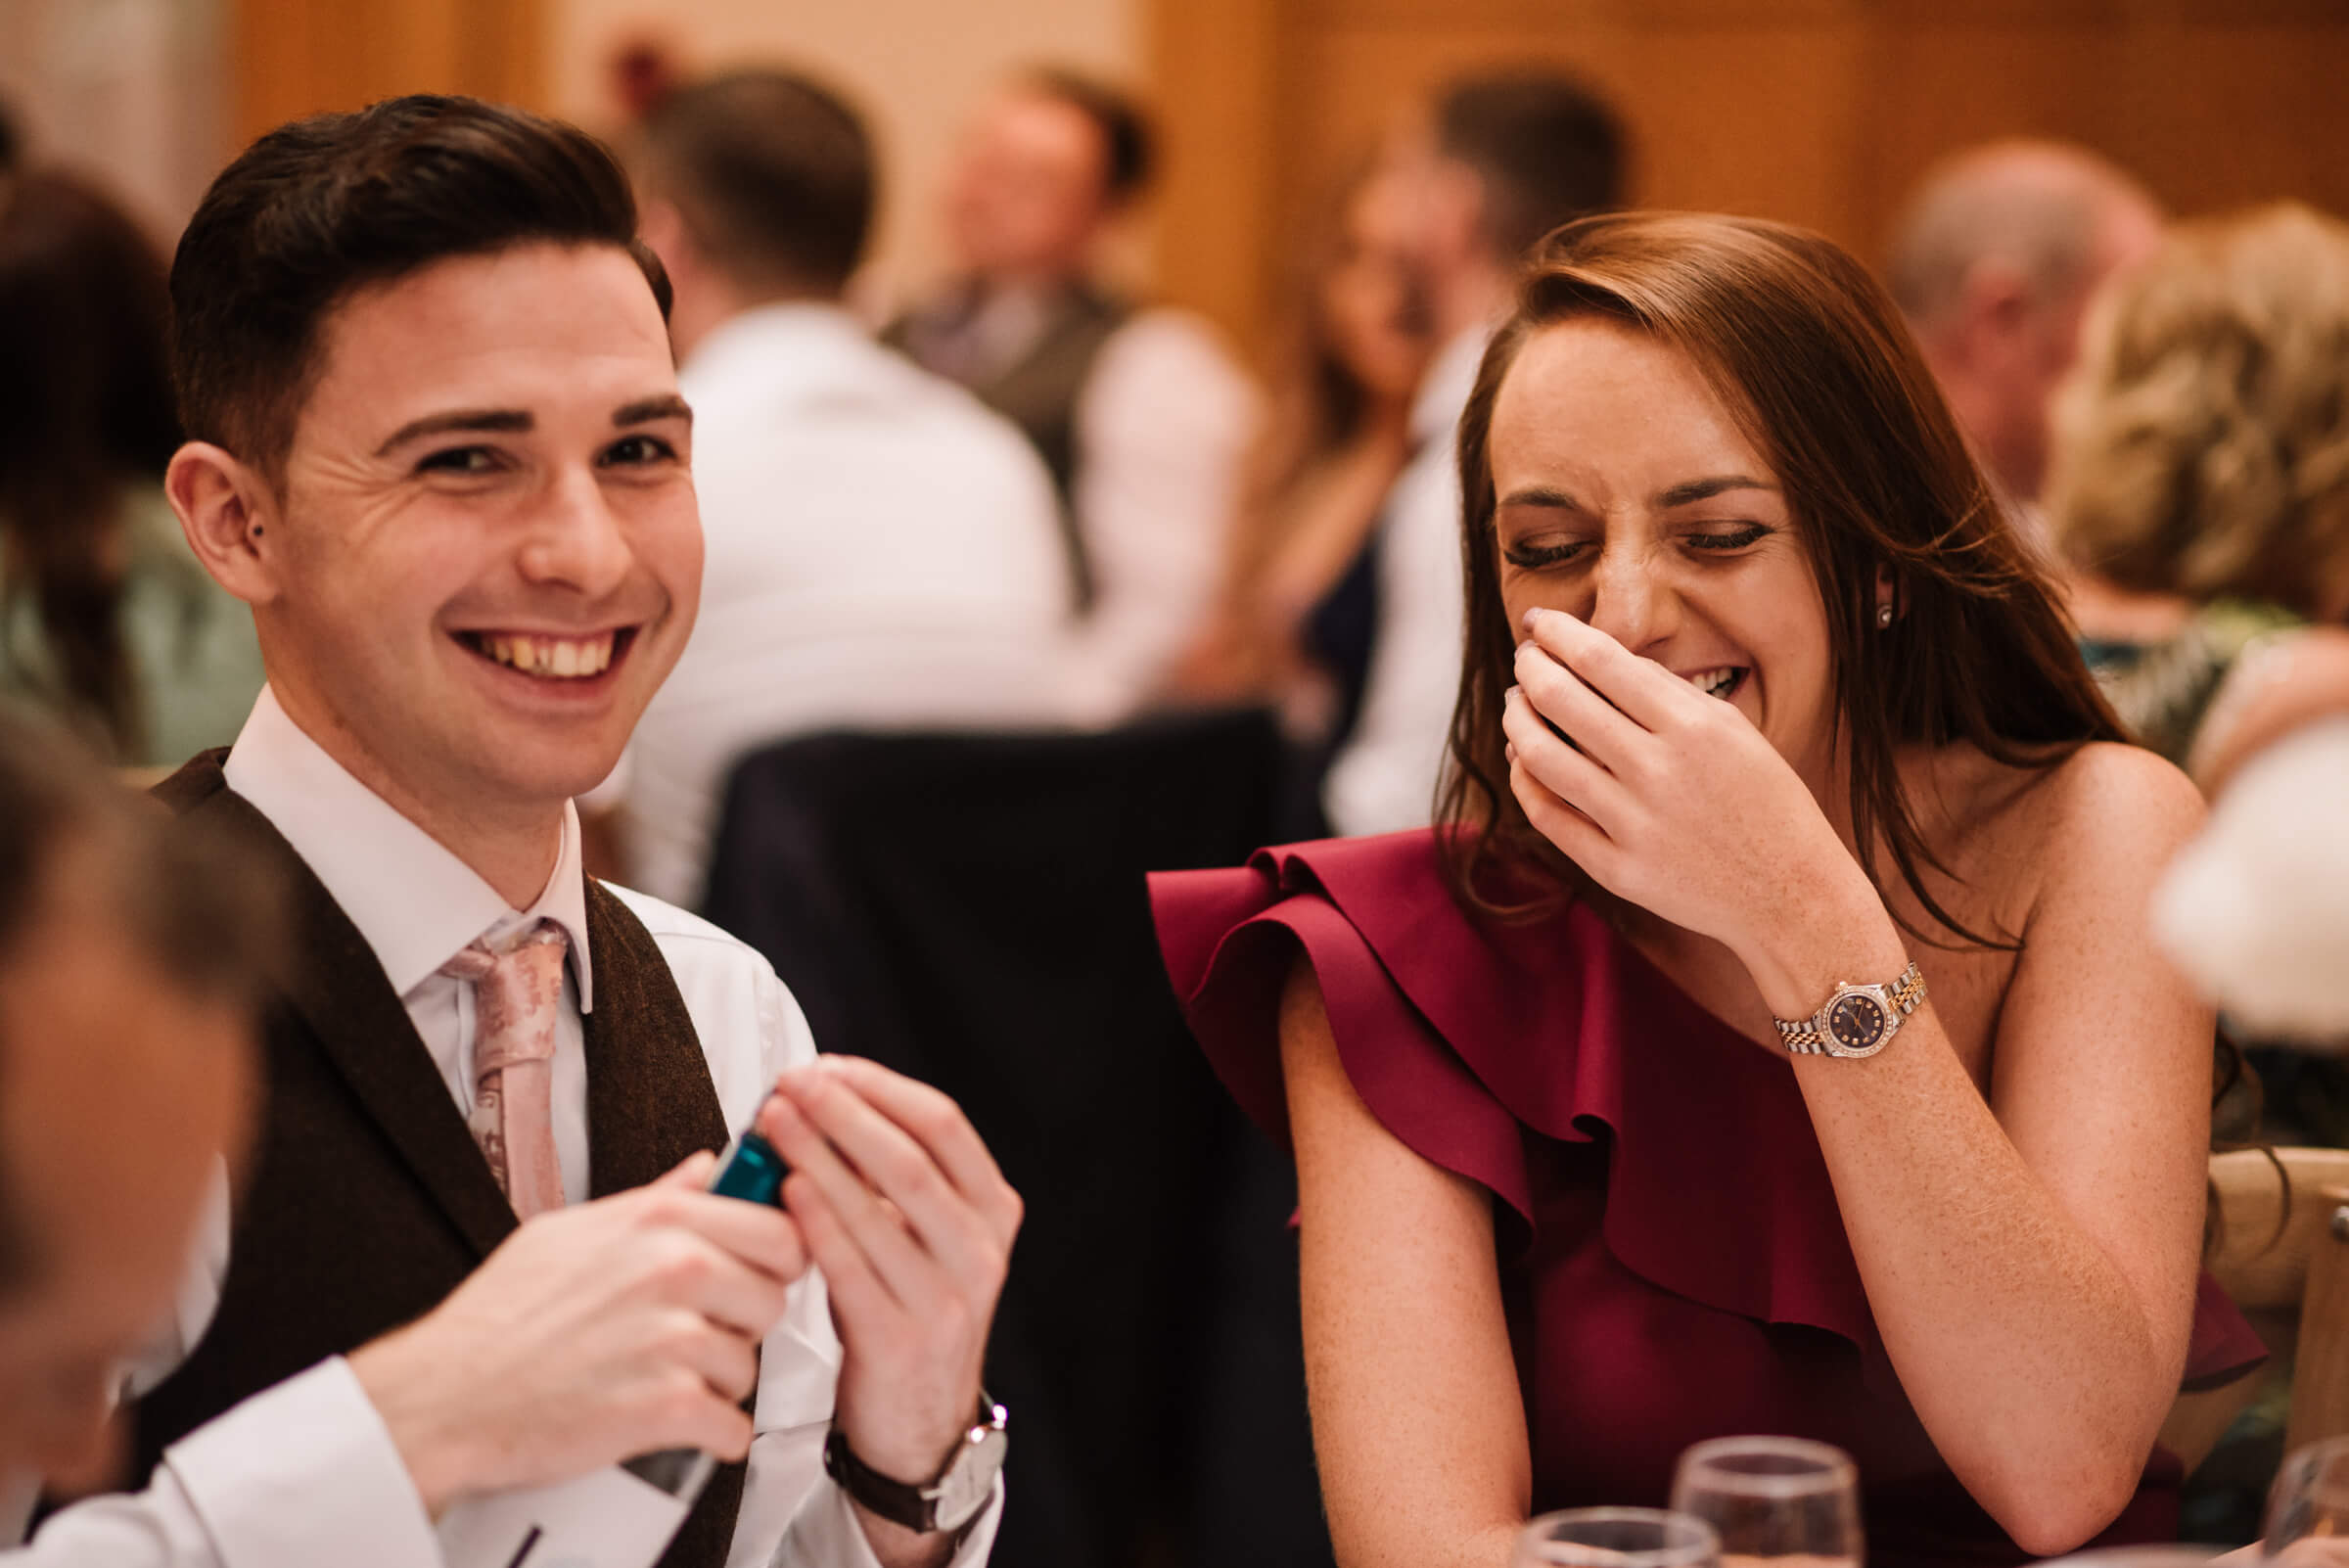 two guests laughing during speeches